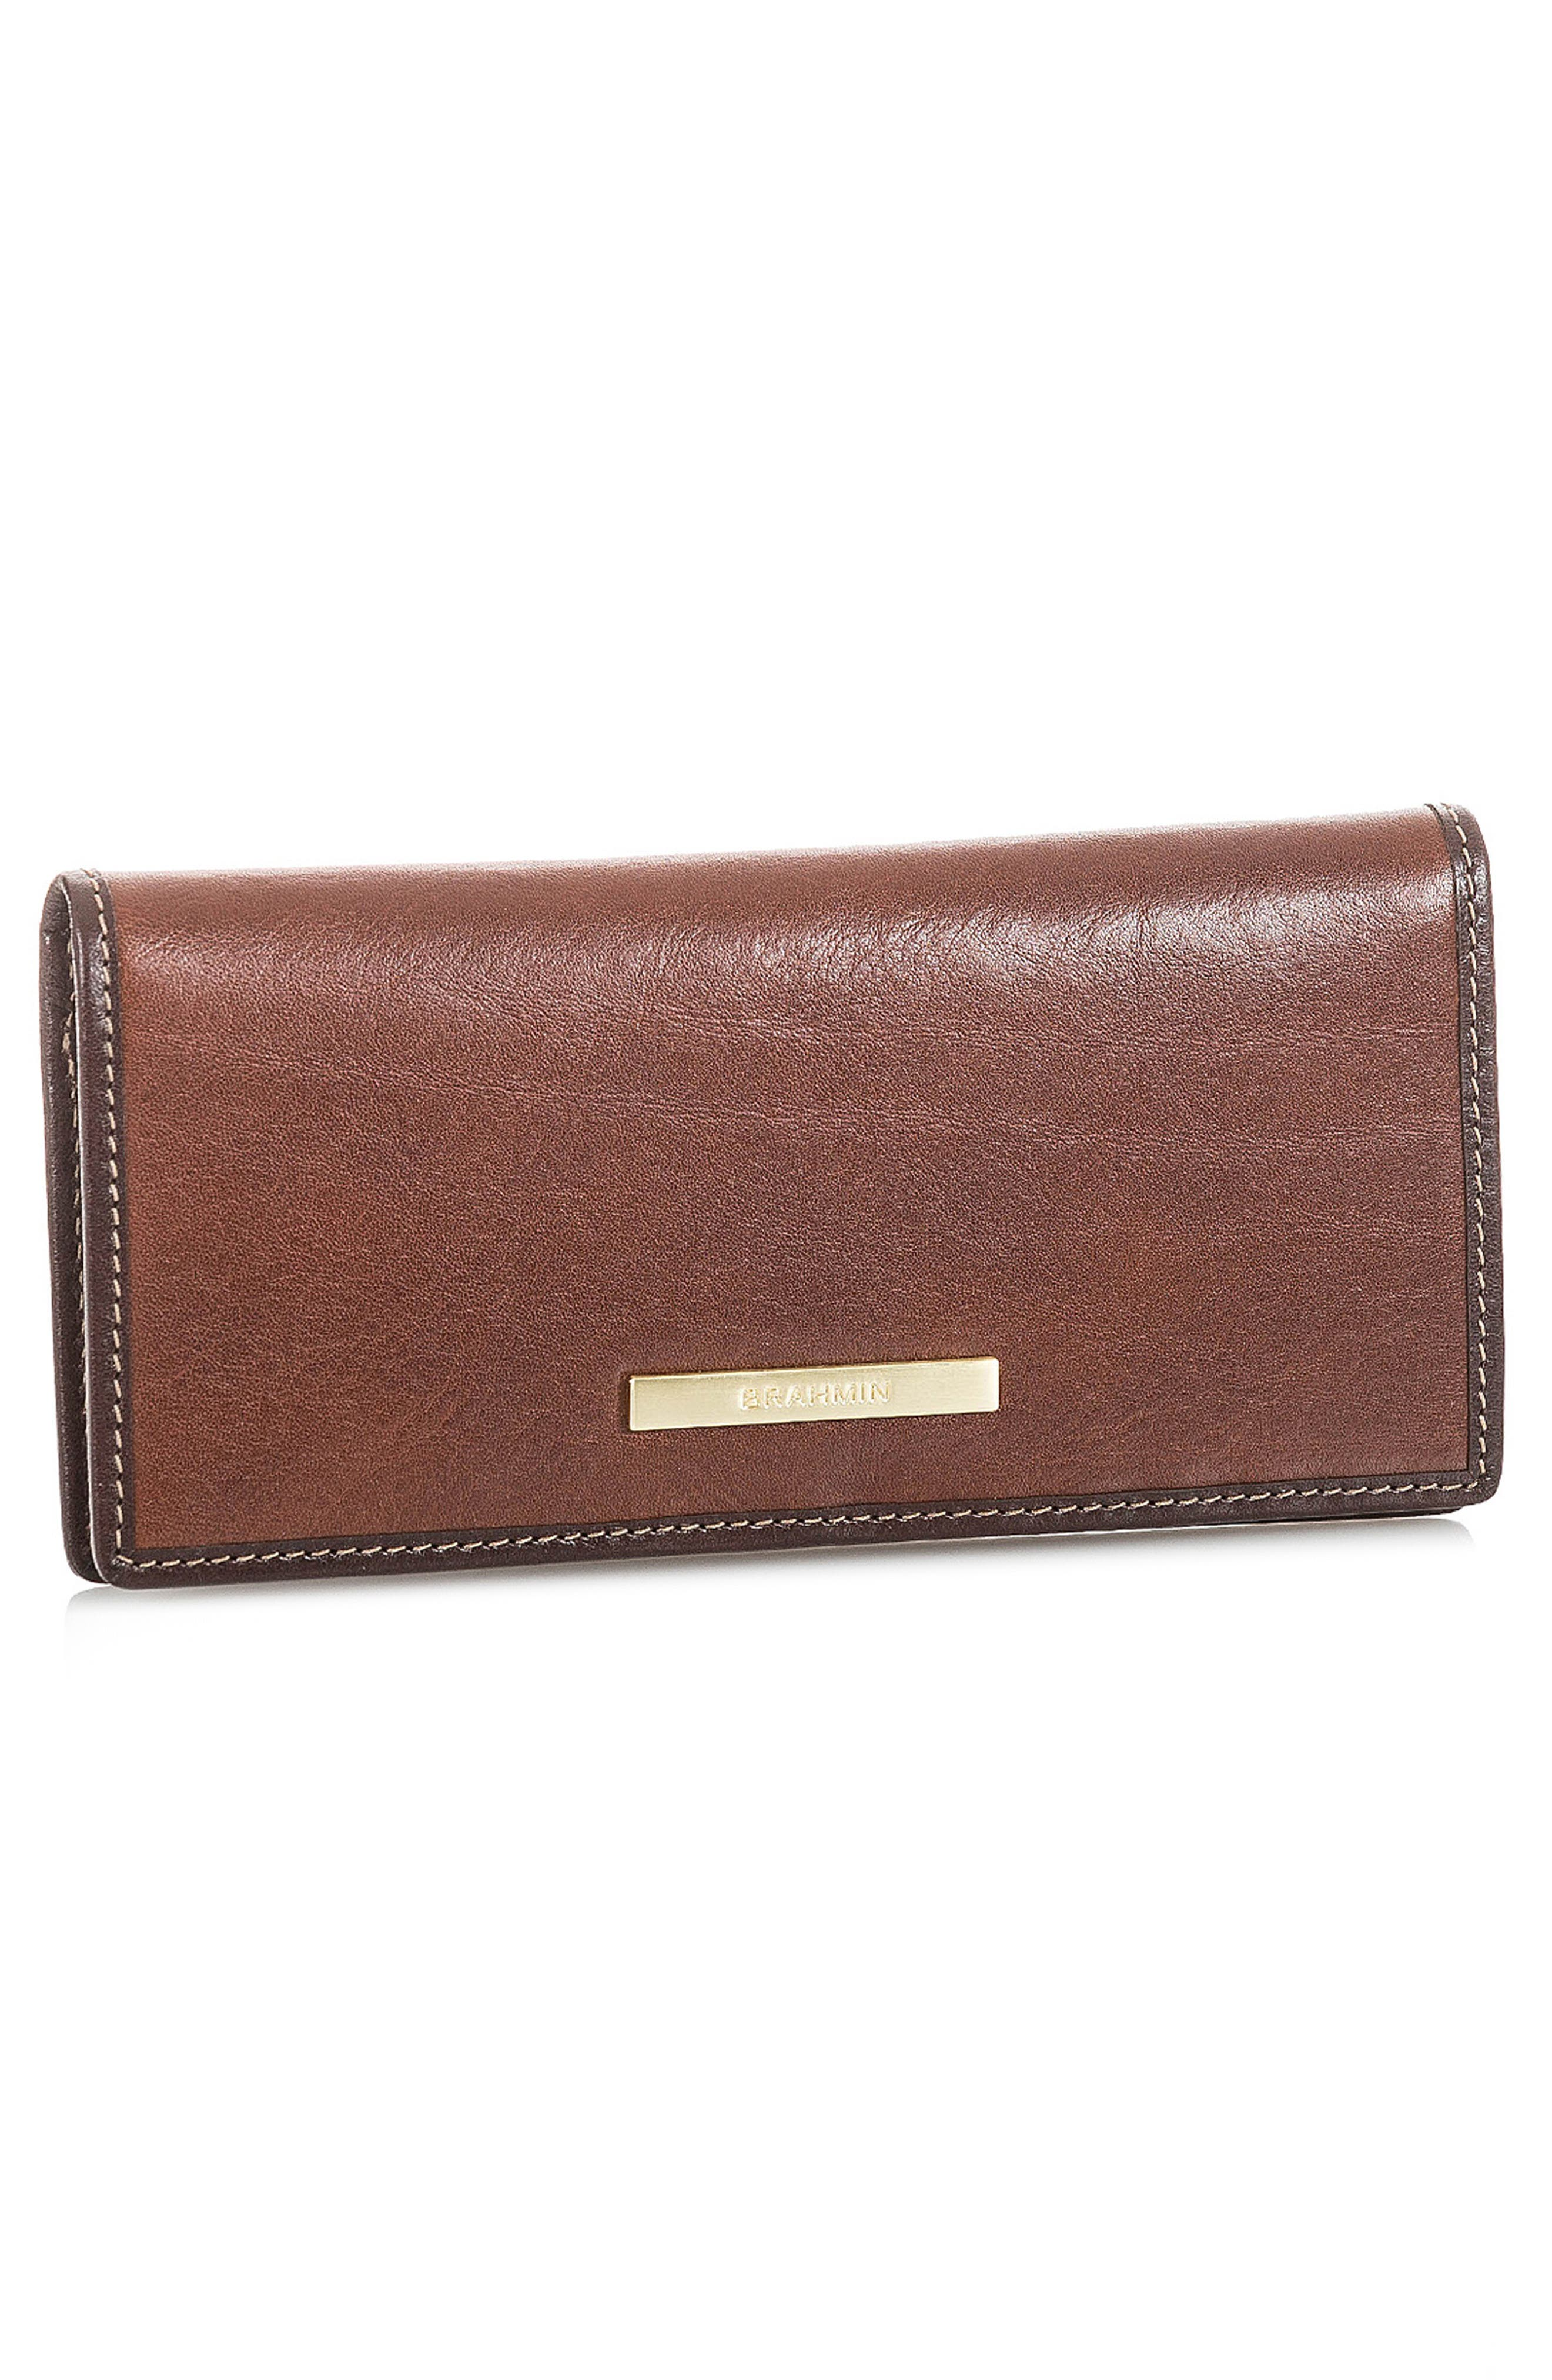 Ady Leather Wallet,                             Alternate thumbnail 4, color,                             200